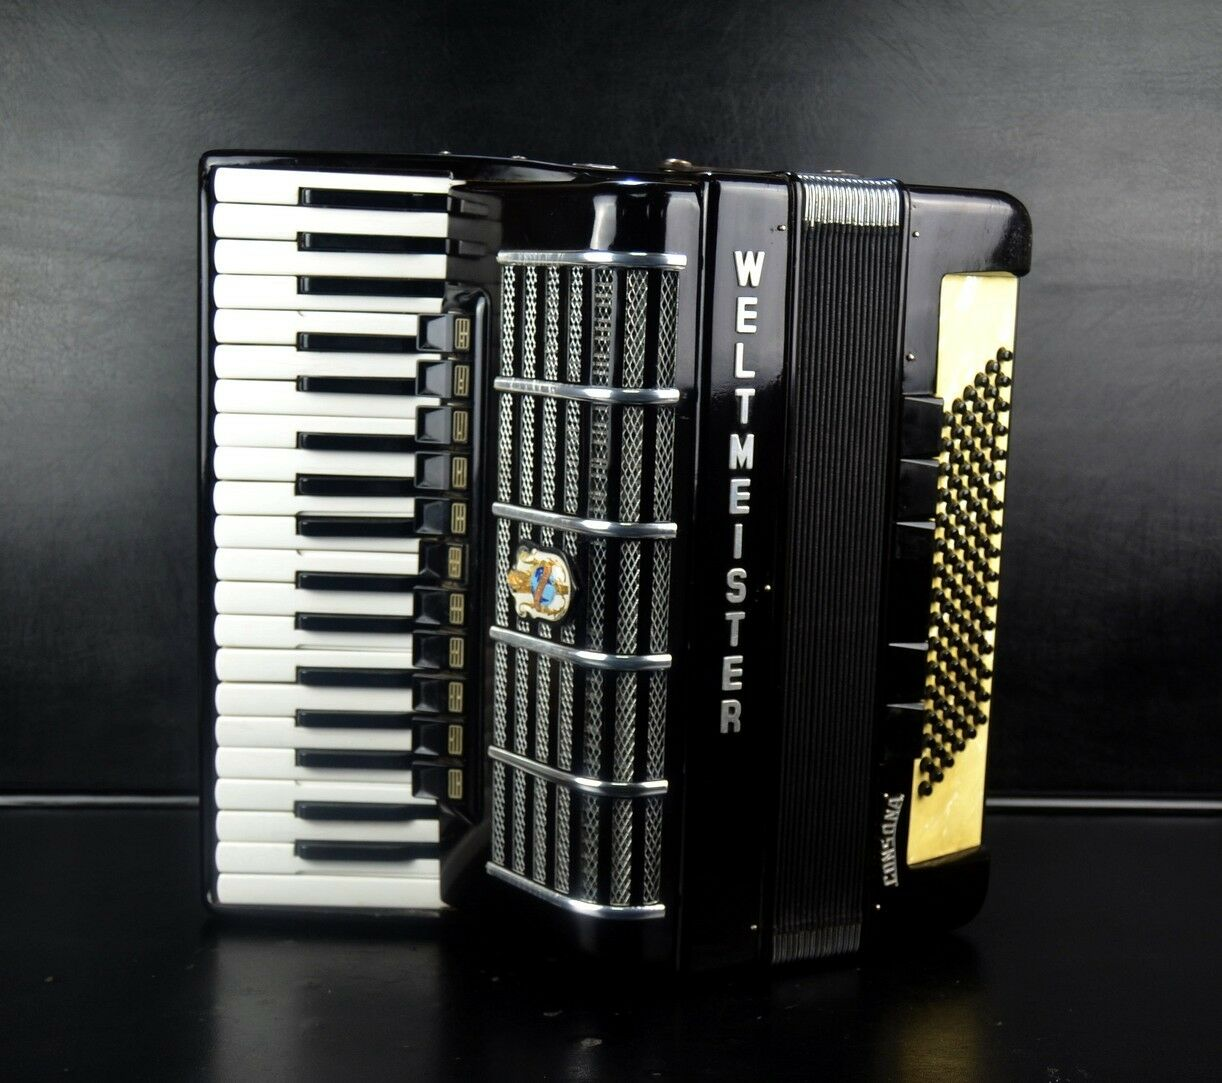 Ebay PROFESSIONAL GERMAN TOP PIANO ACCORDION WELTMEISTER